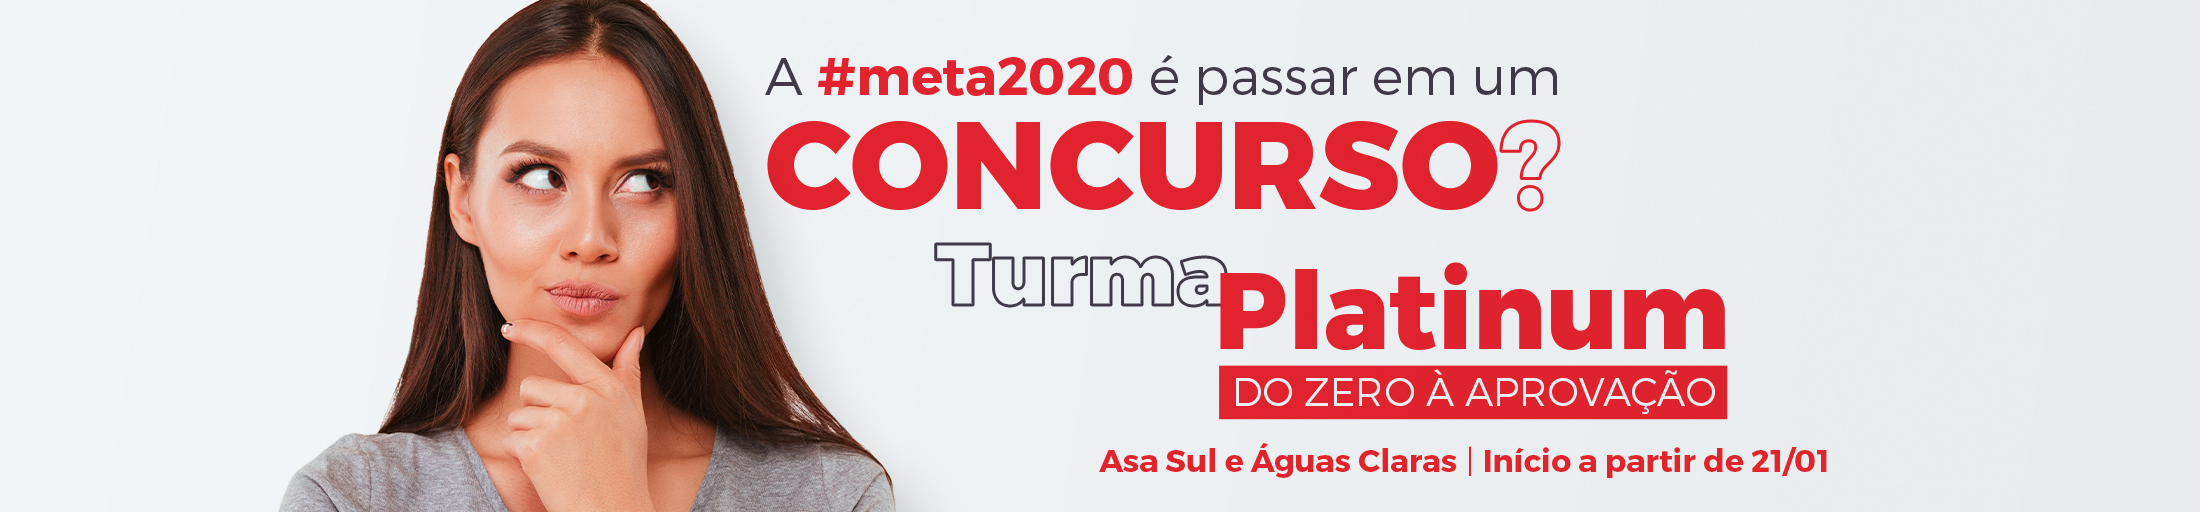 BANNER_SITE_VOLTA_AS_AULAS_2020_PLATINUM